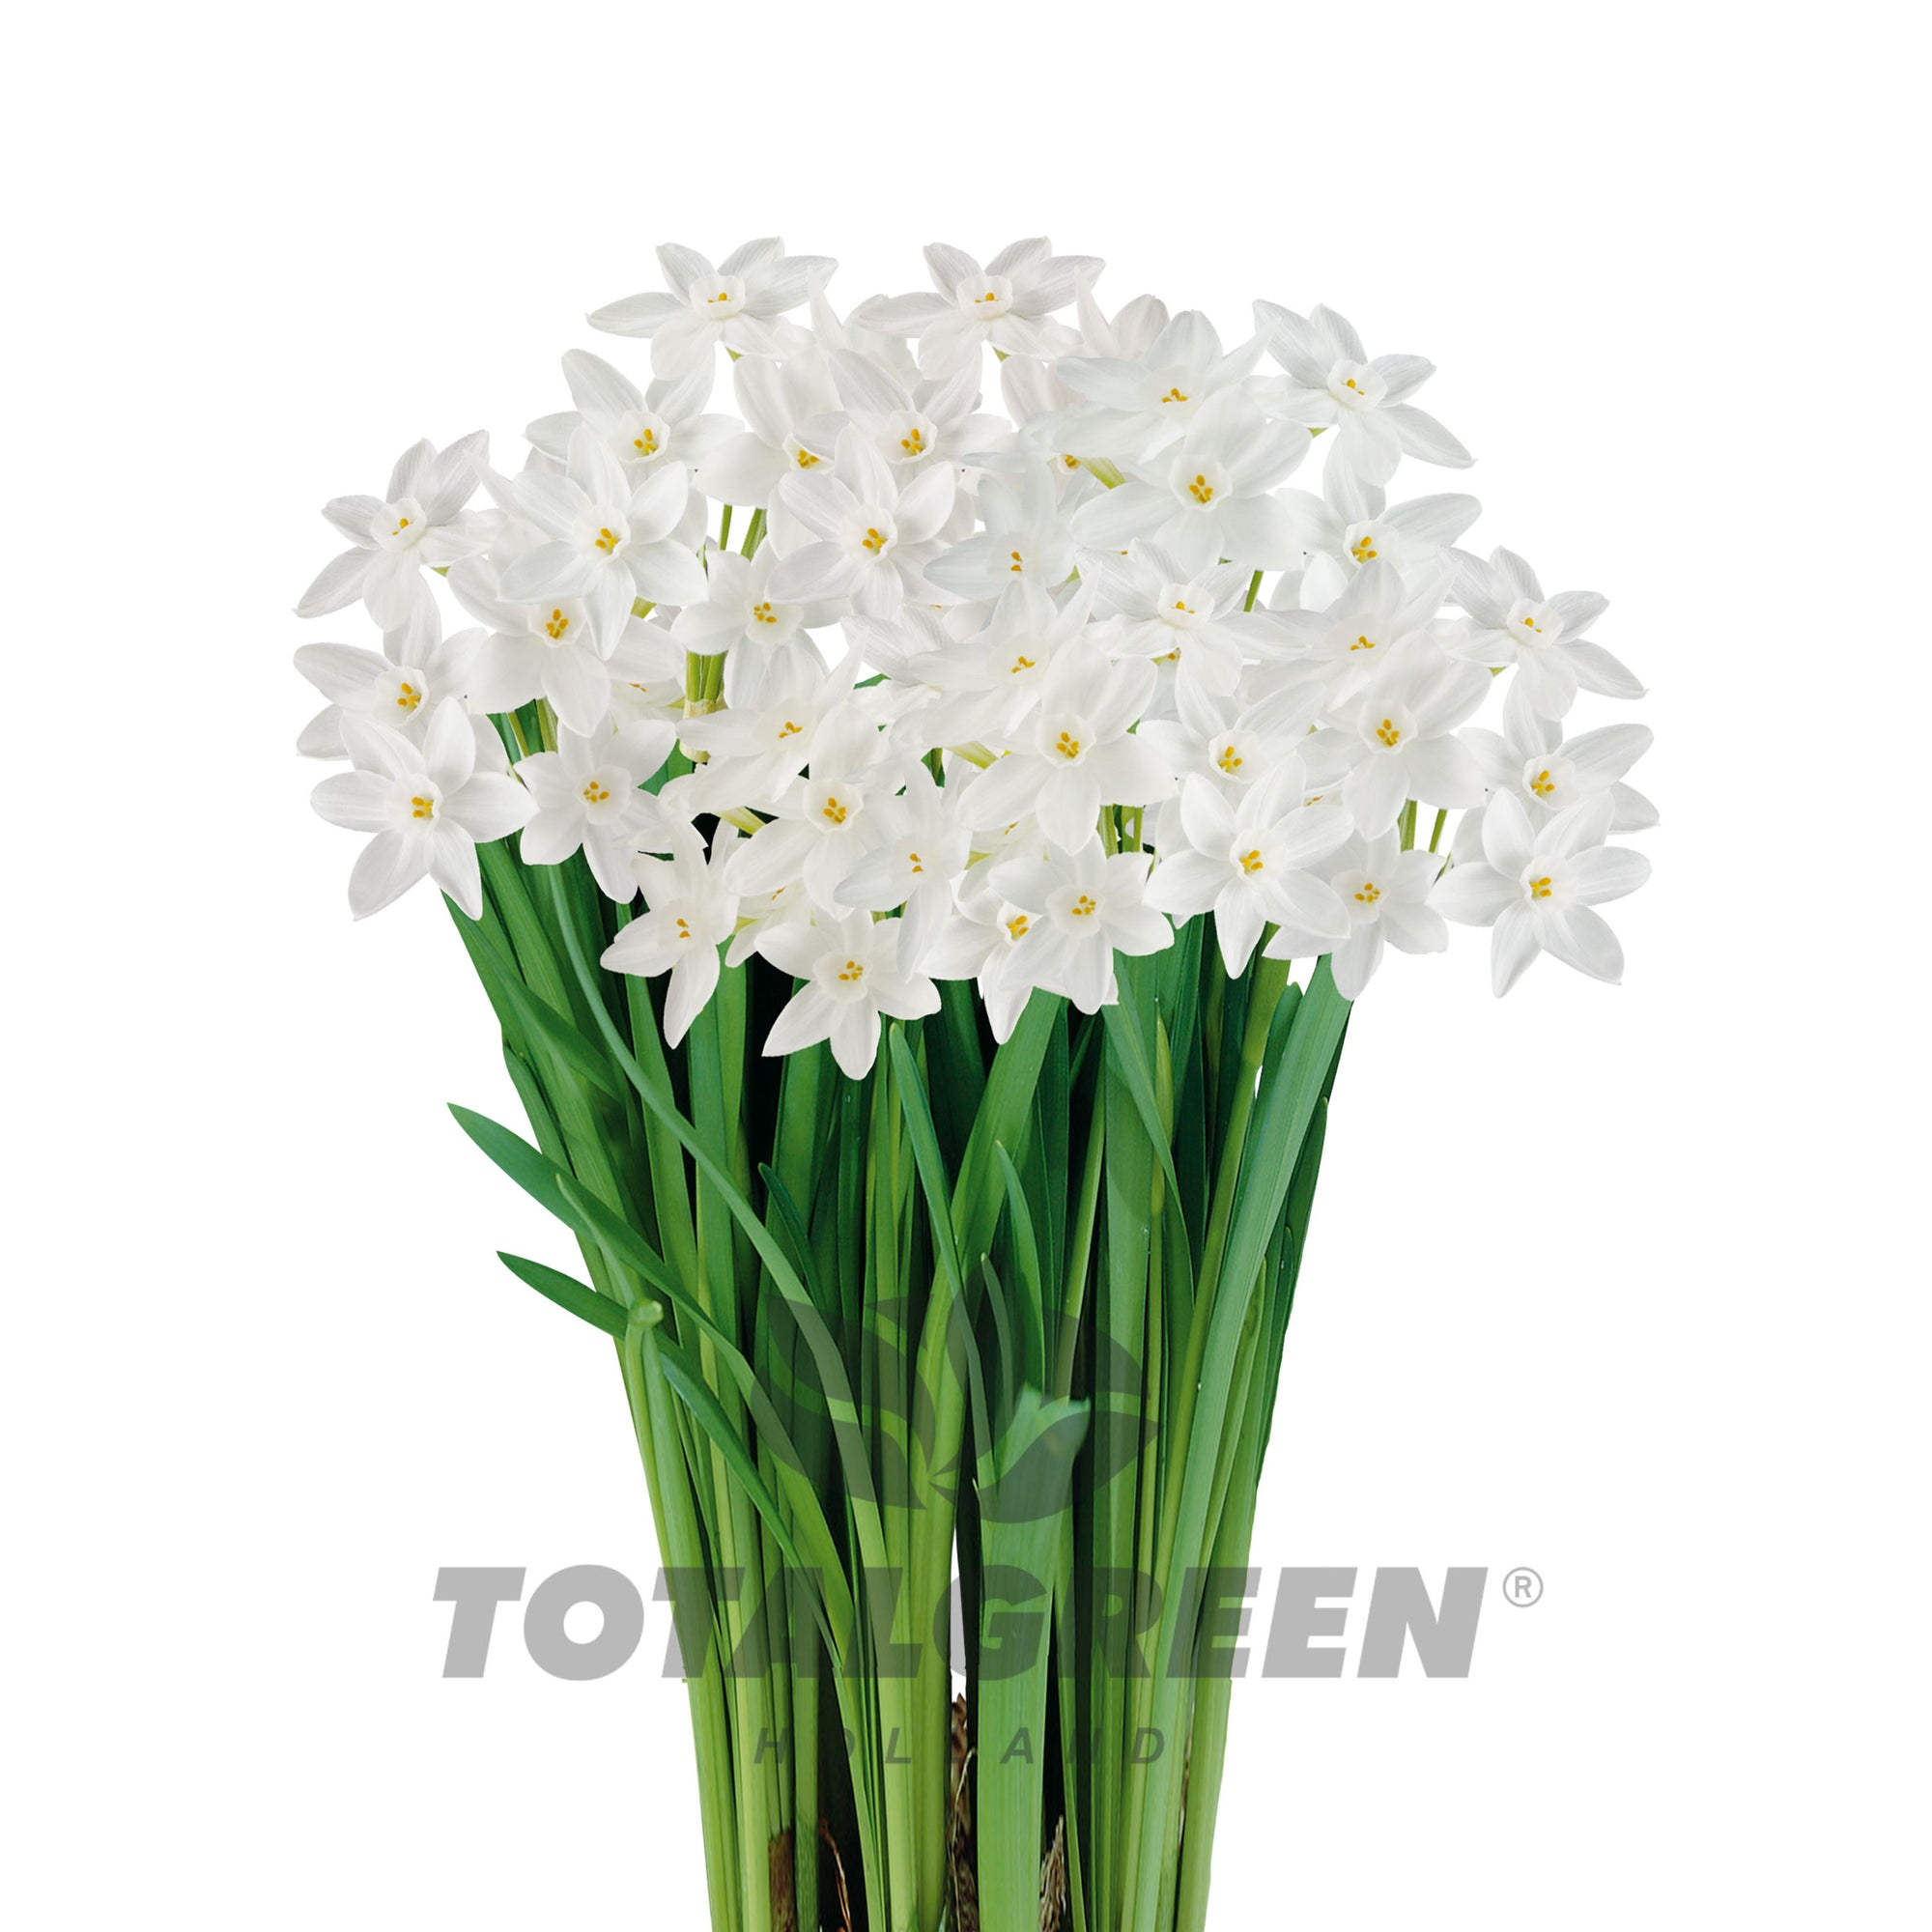 Narcissi Paperwhites Grow Kit